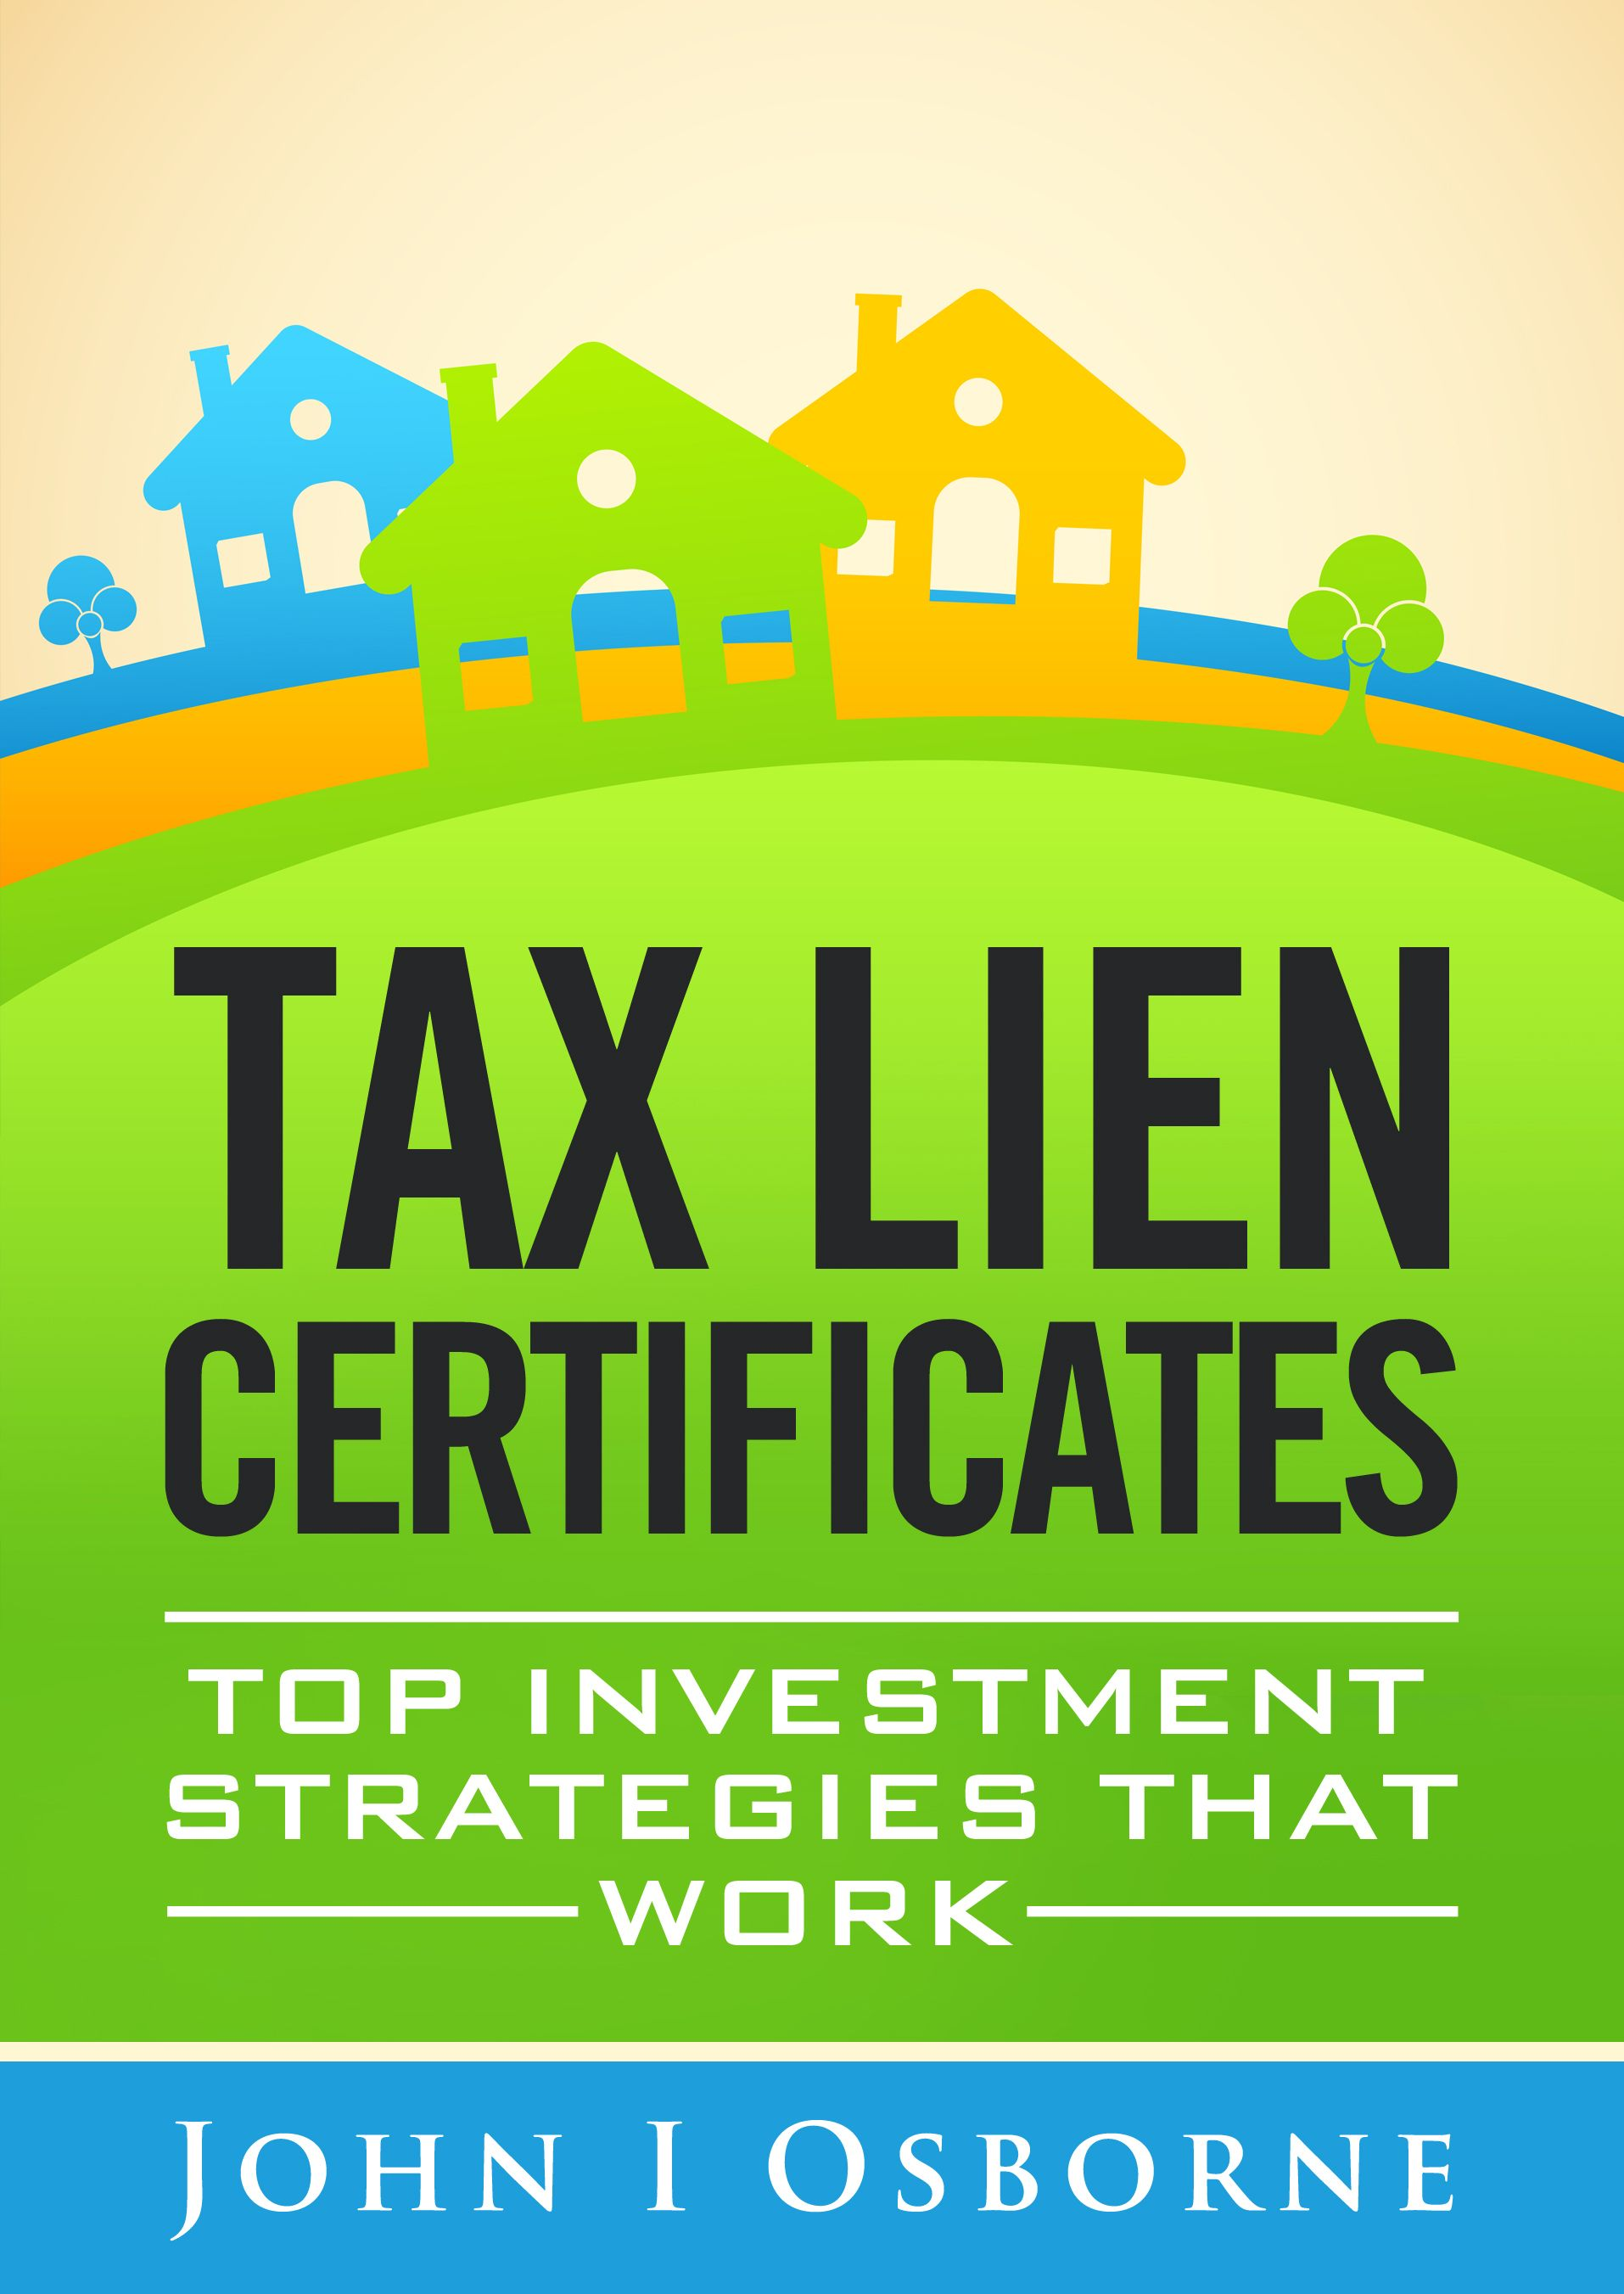 Investing In Tax Lien Certificates Can Be A Very Profitable Way To